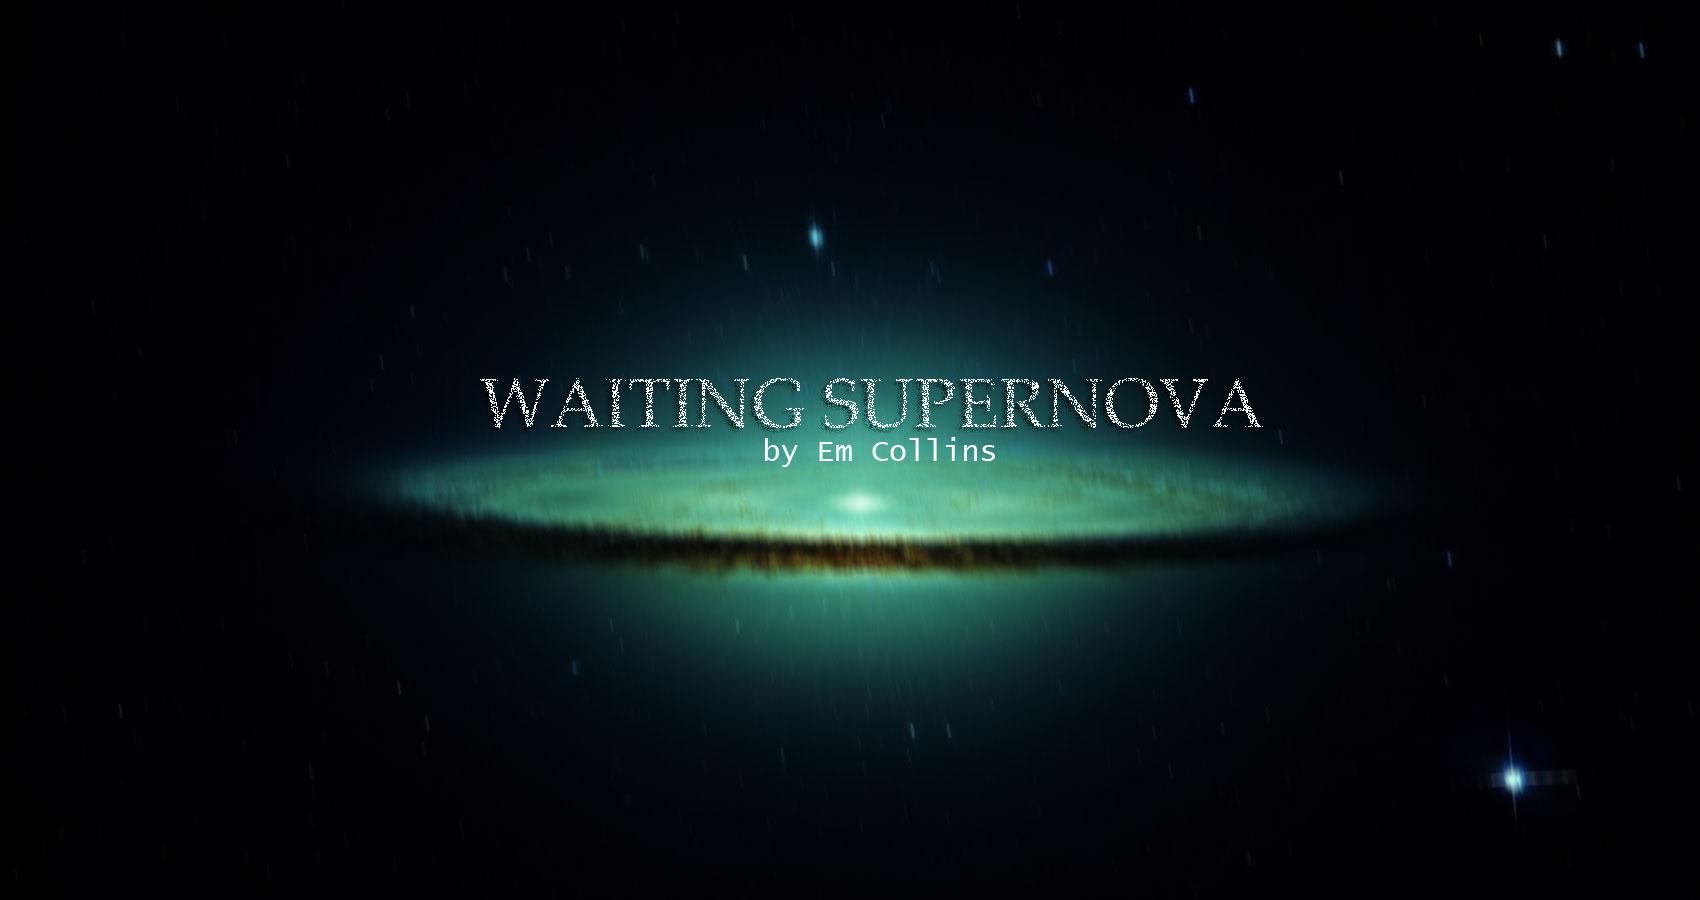 Waiting Supernova at Spillwords.com